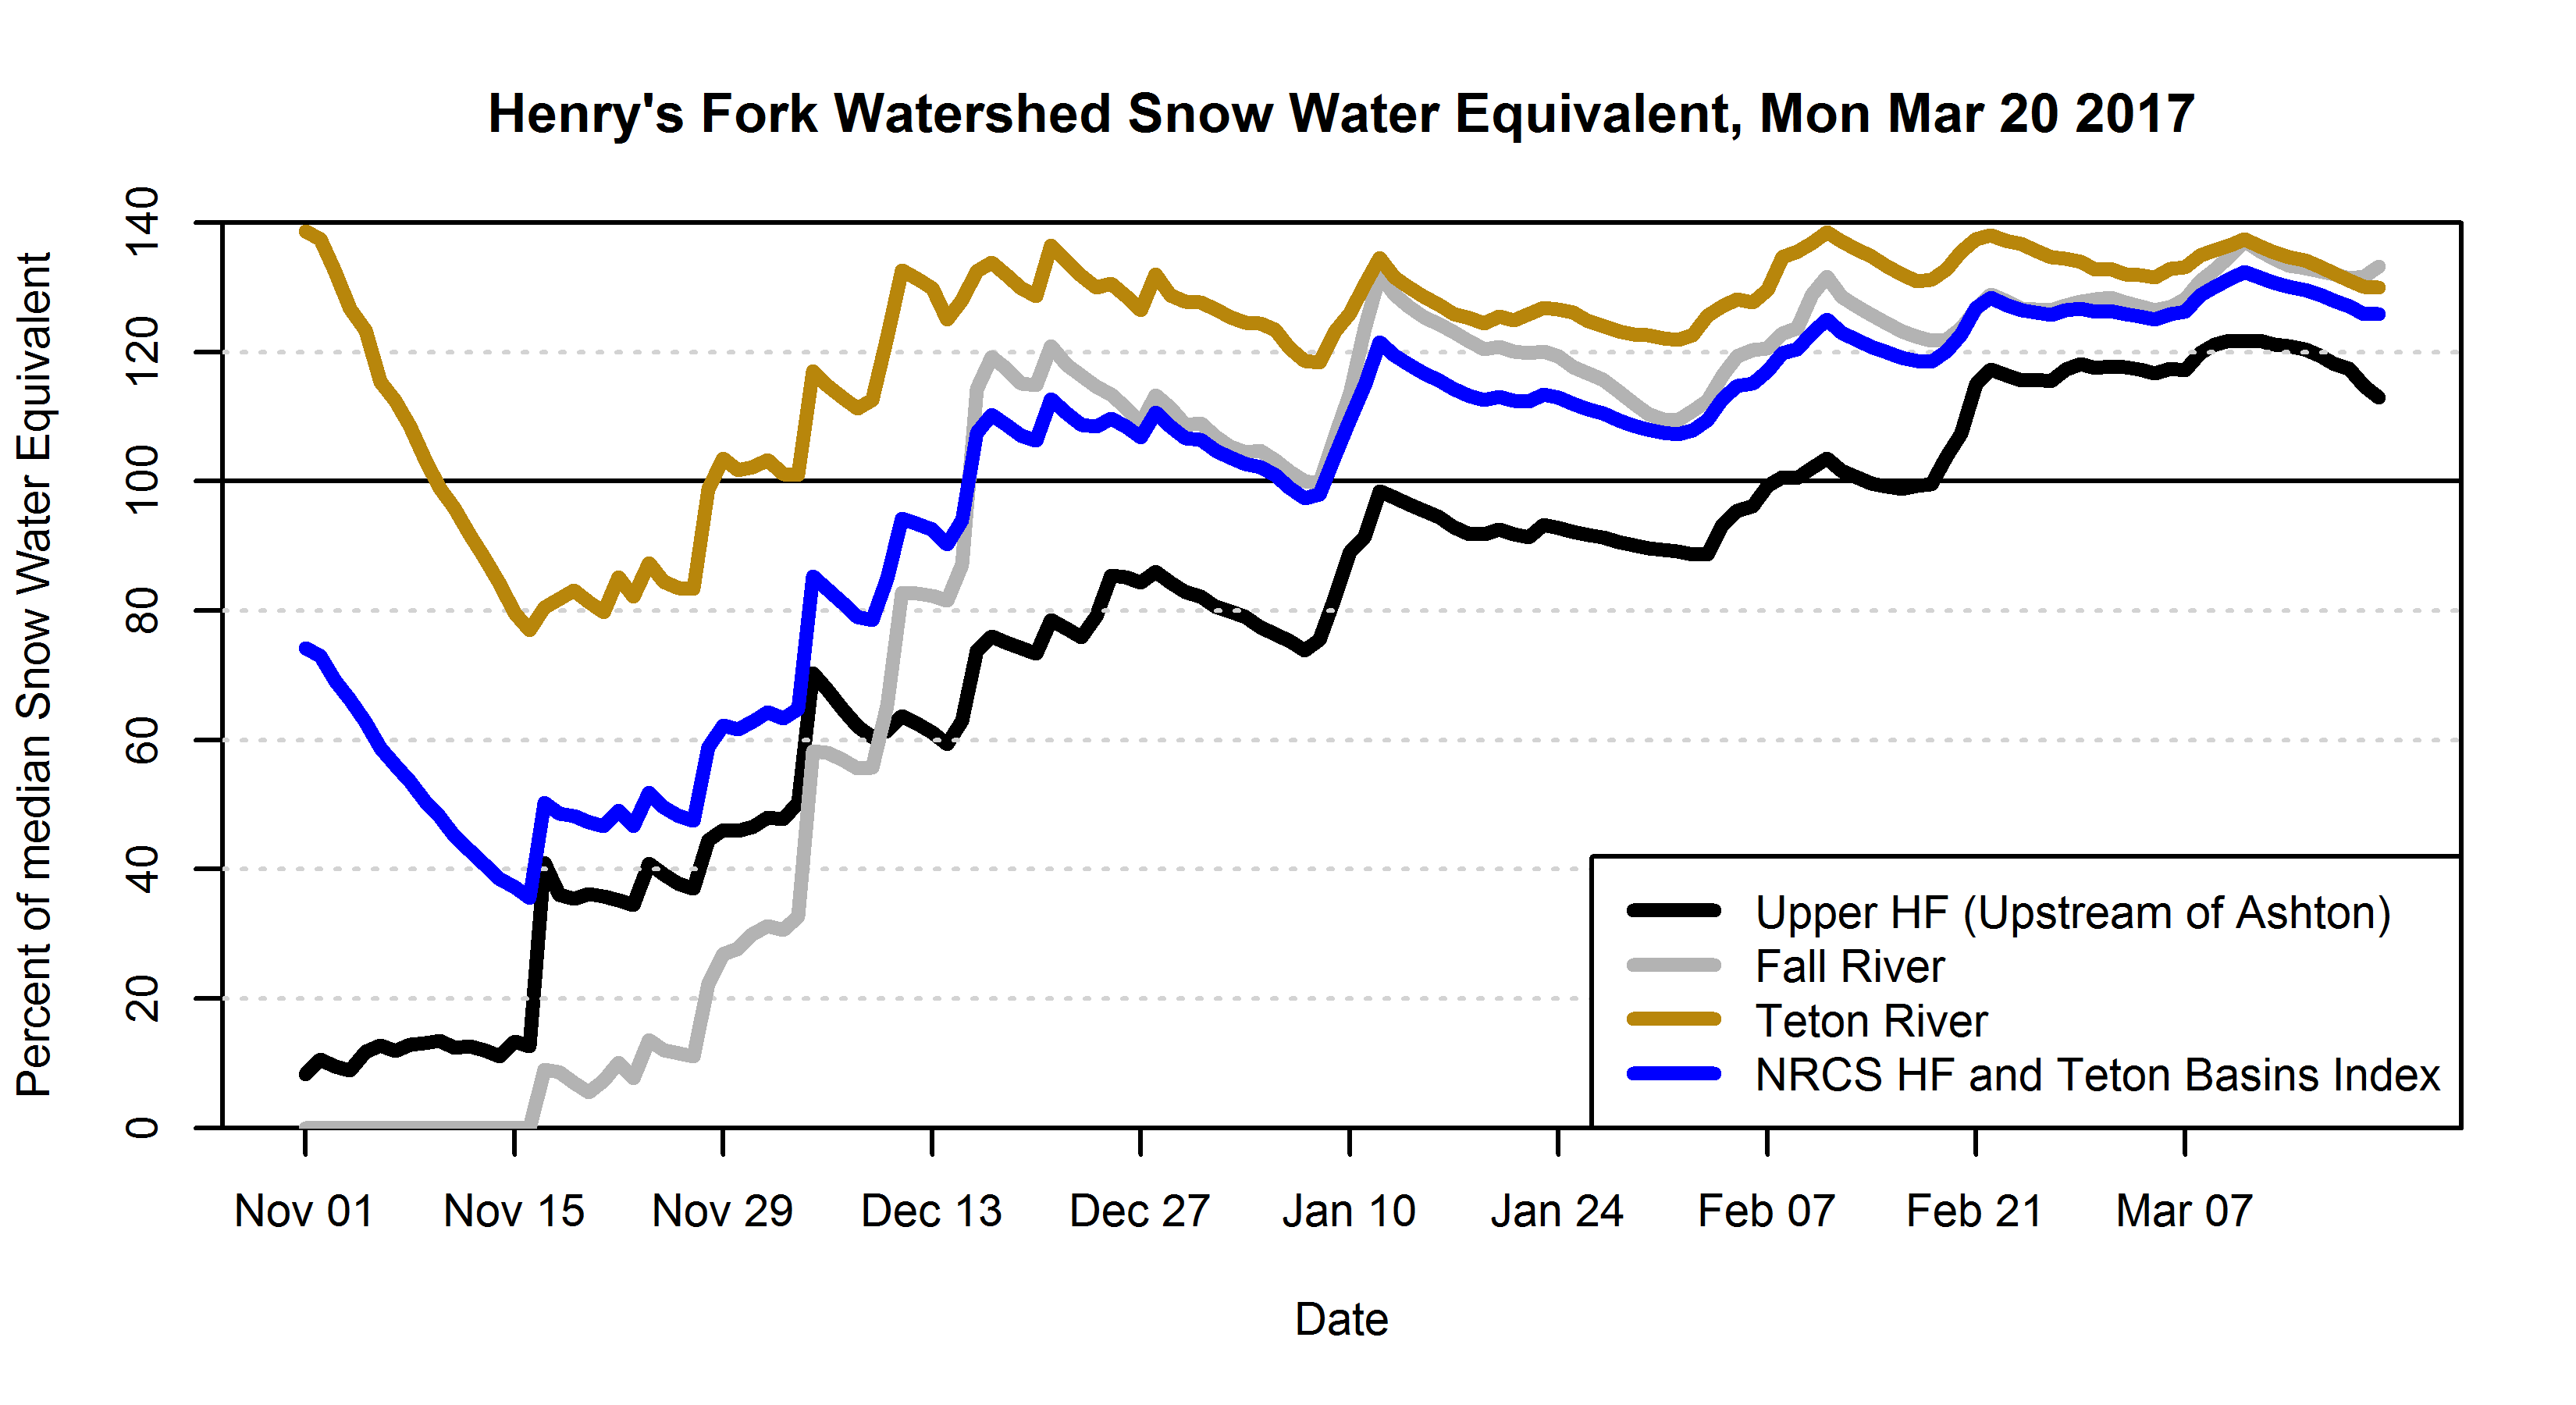 Graph of SWE in Henry's Fork watershed during winter of 2017.